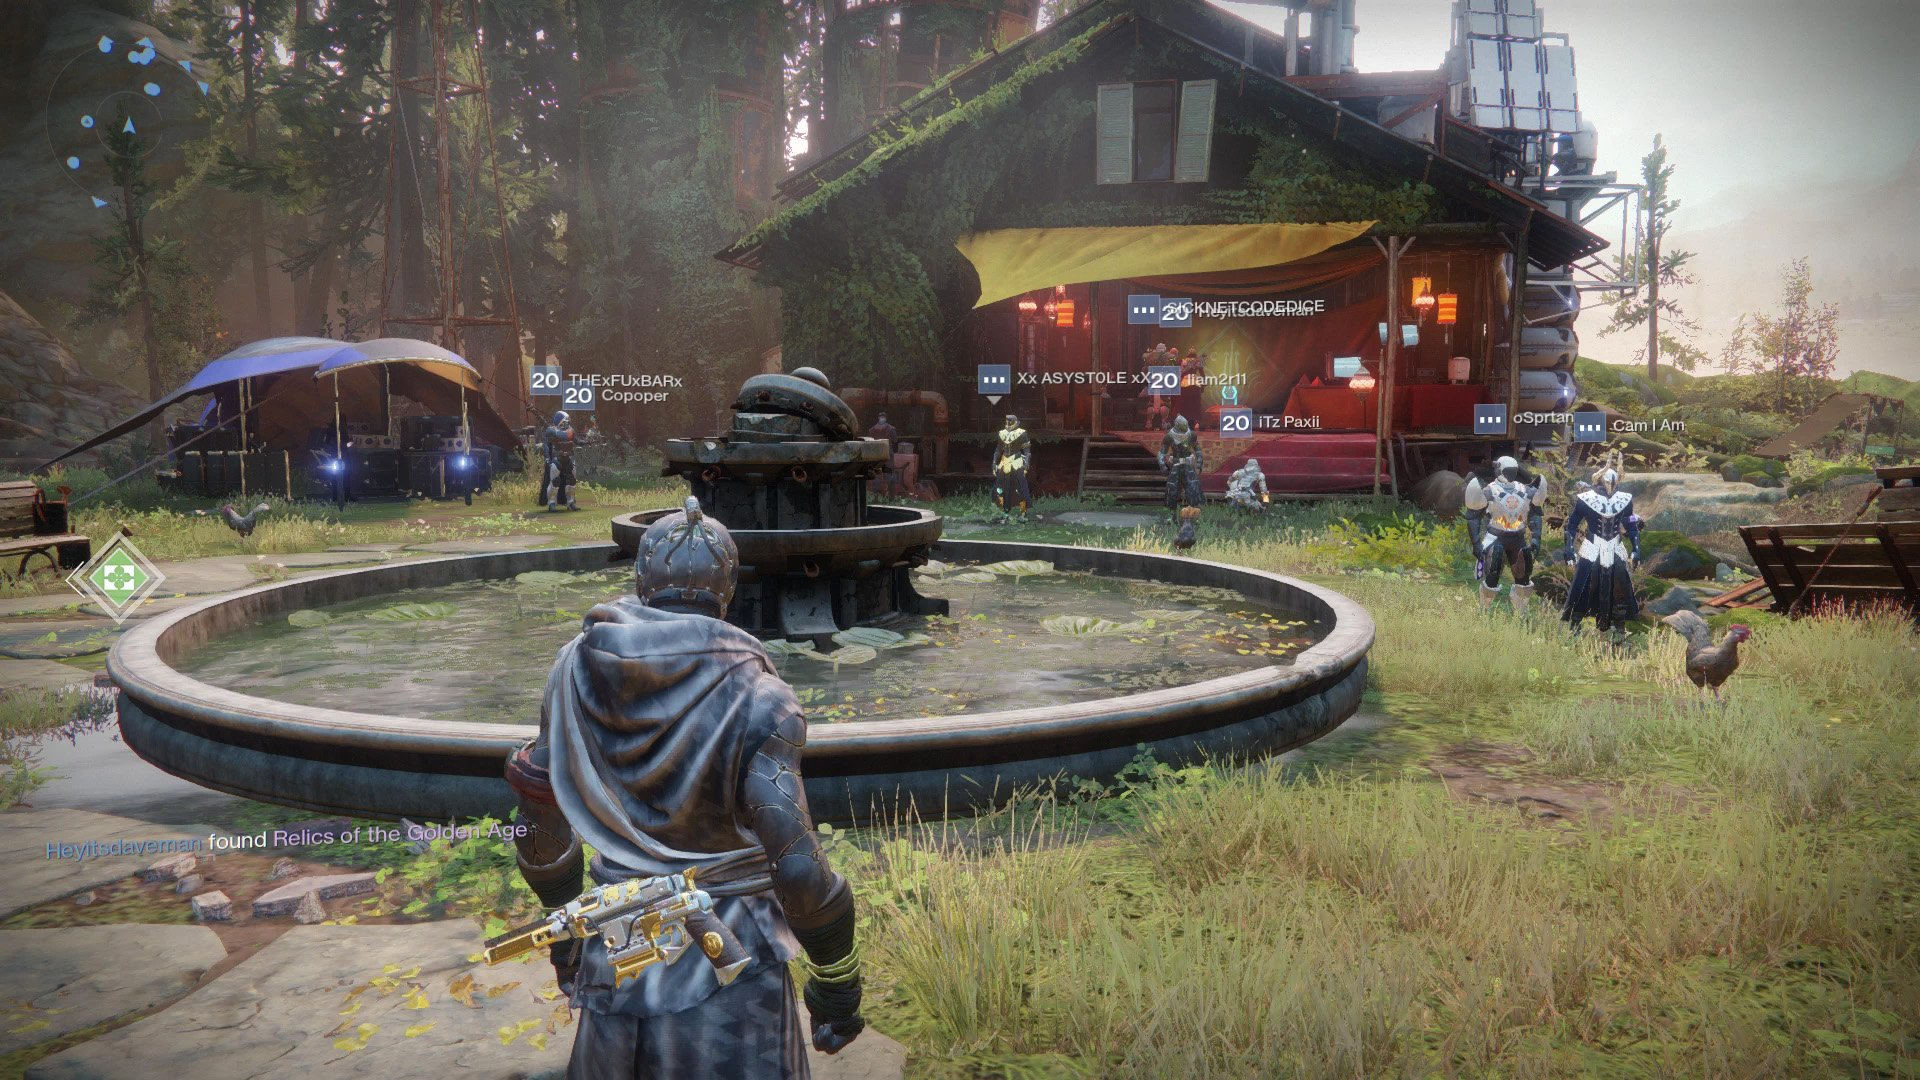 Where to find Tyra Karn in Destiny 2 - Image of her location